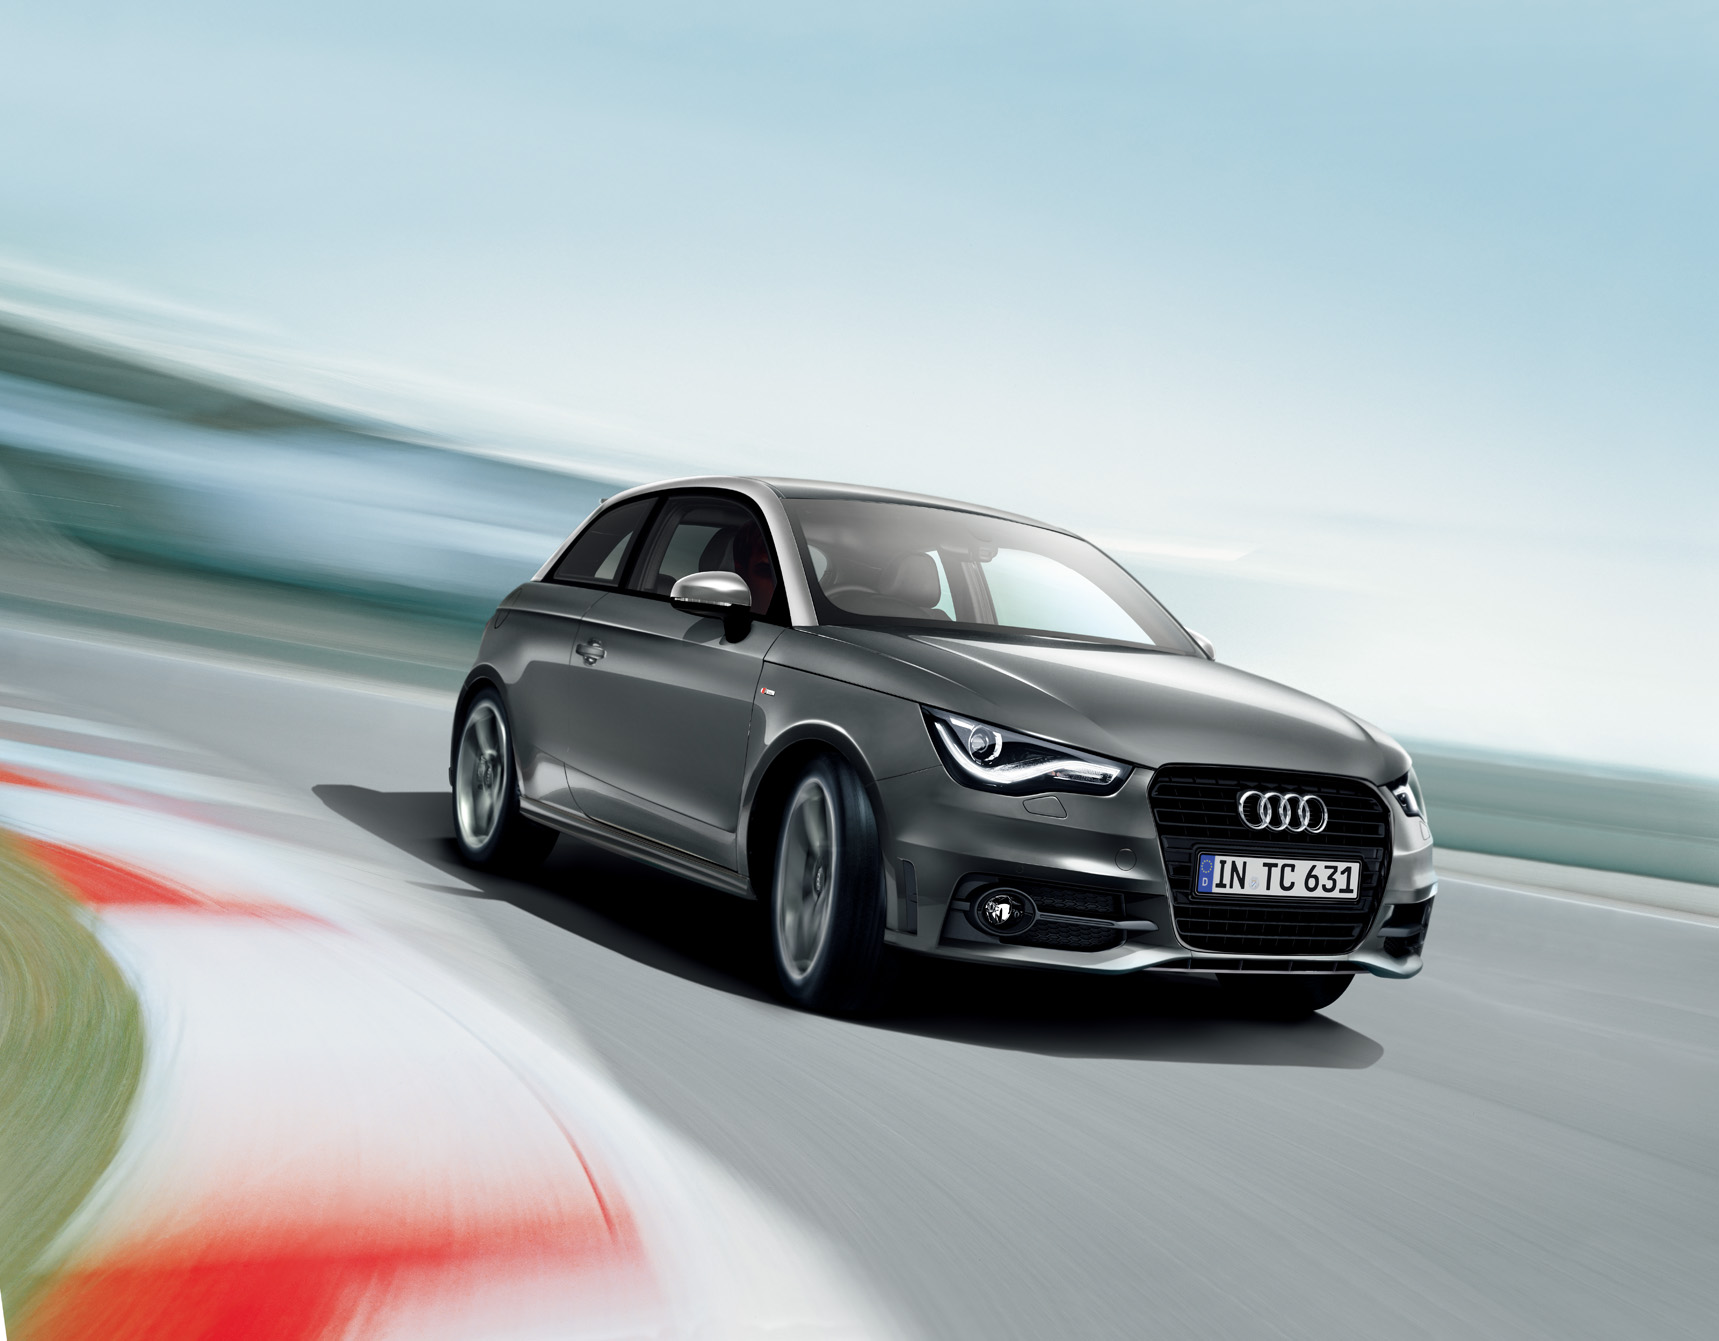 Audi A1、2つの特別仕様車 Audi A1 urban racer limited / Audi A1 Sportback admired limited を発売